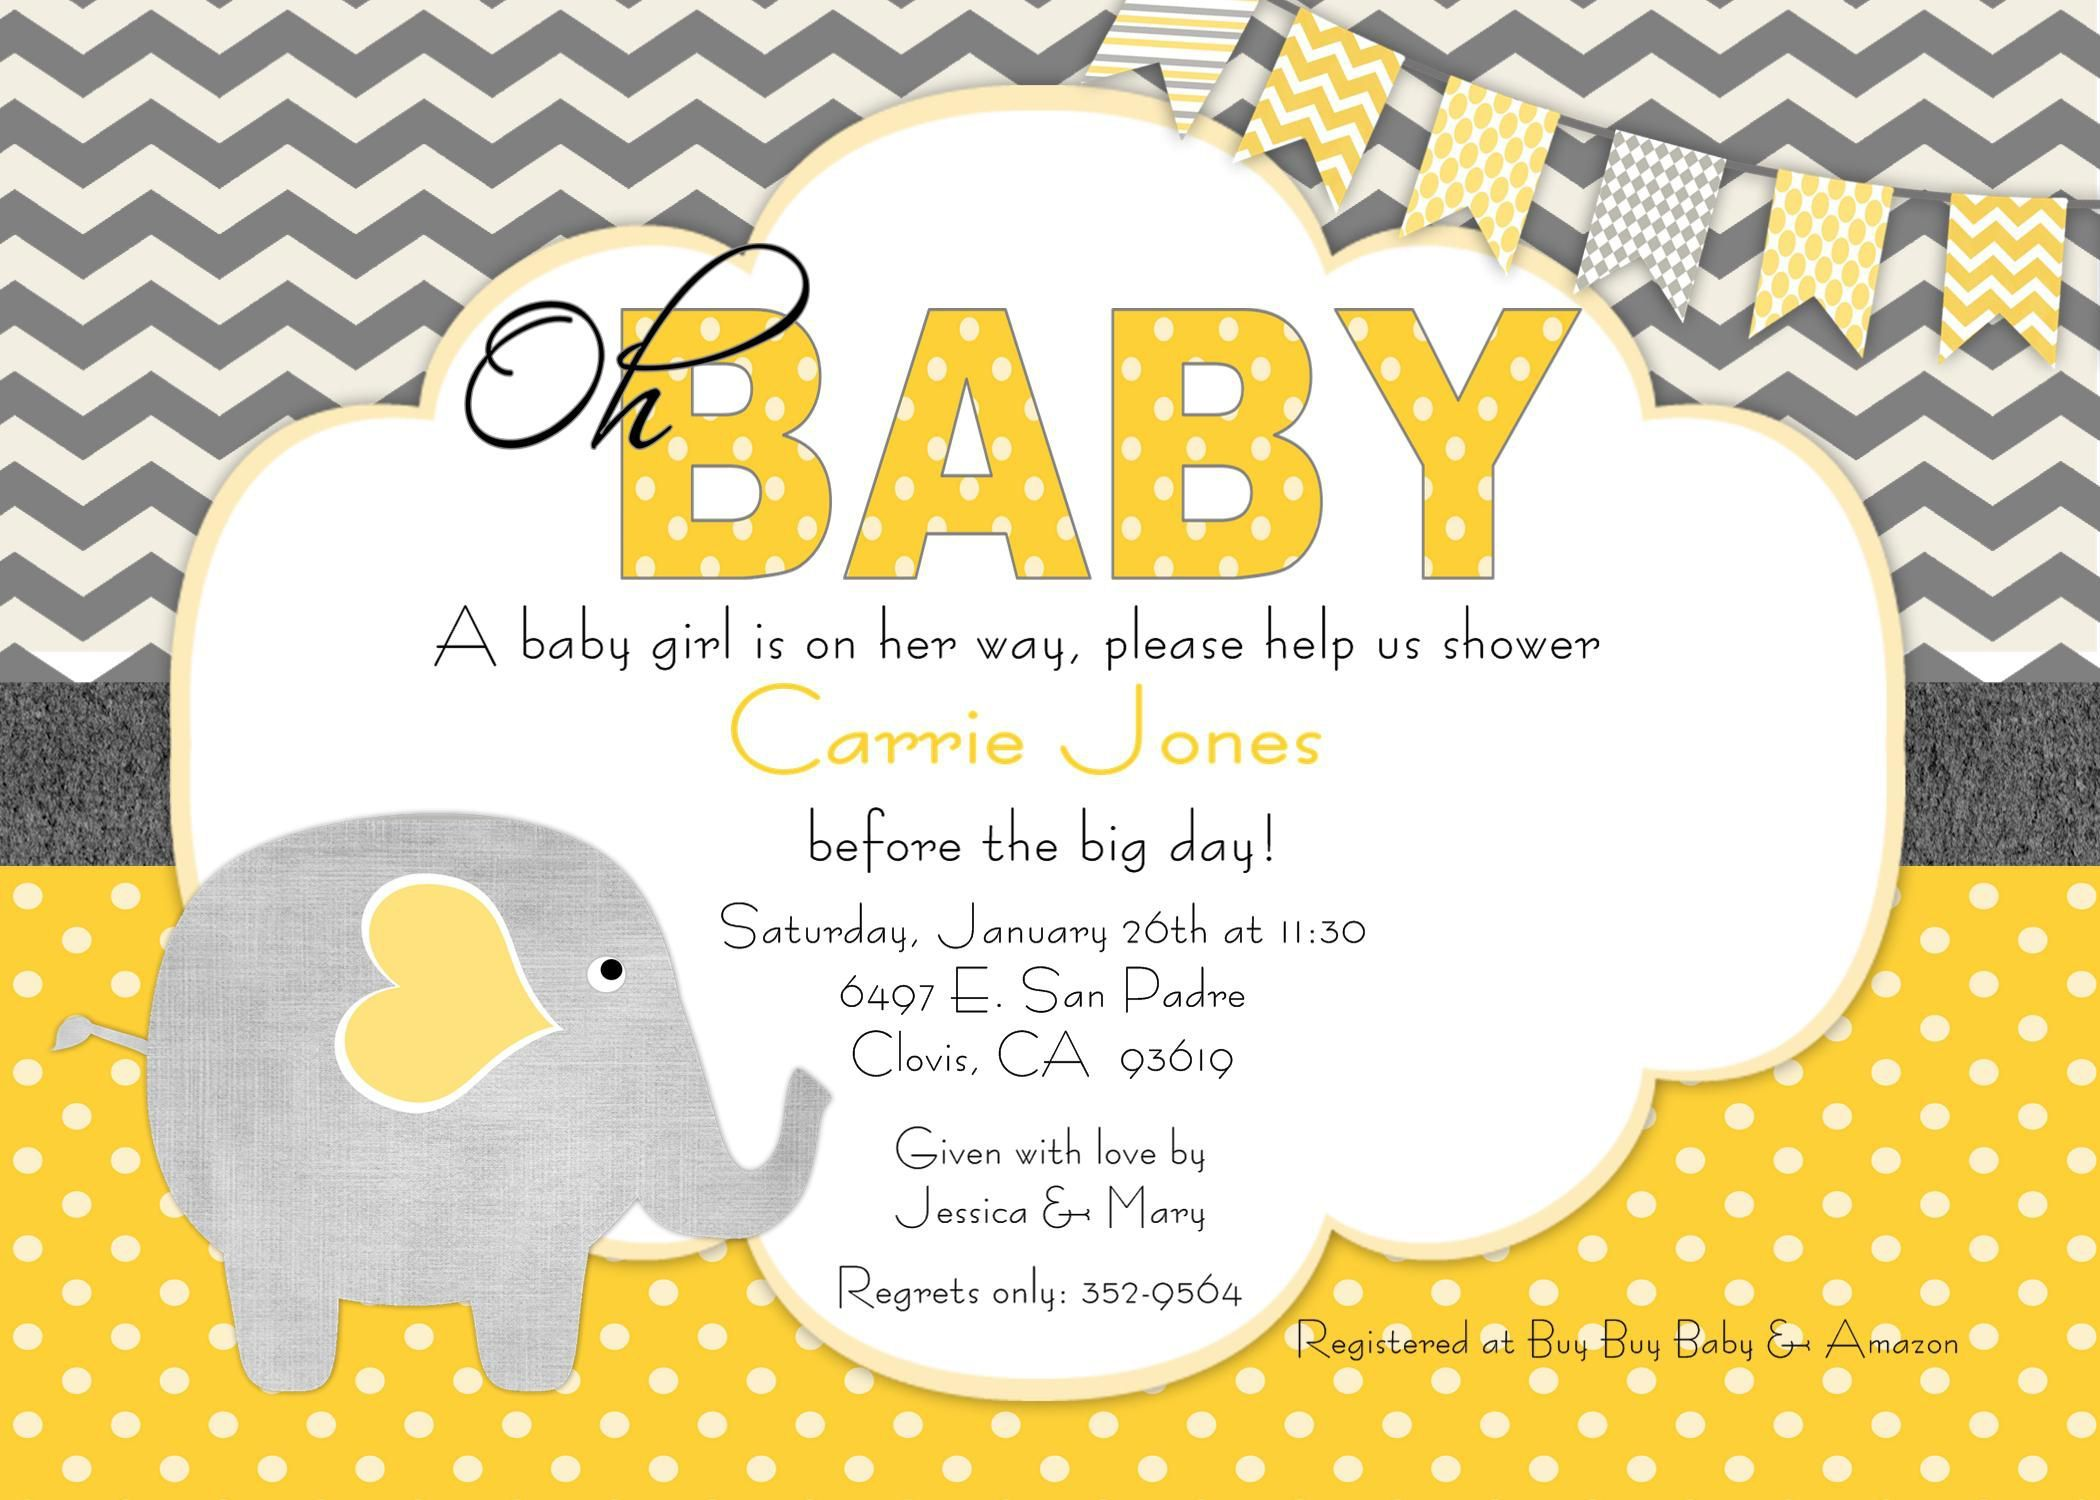 baby shower invitation : Free baby shower invitation template ...